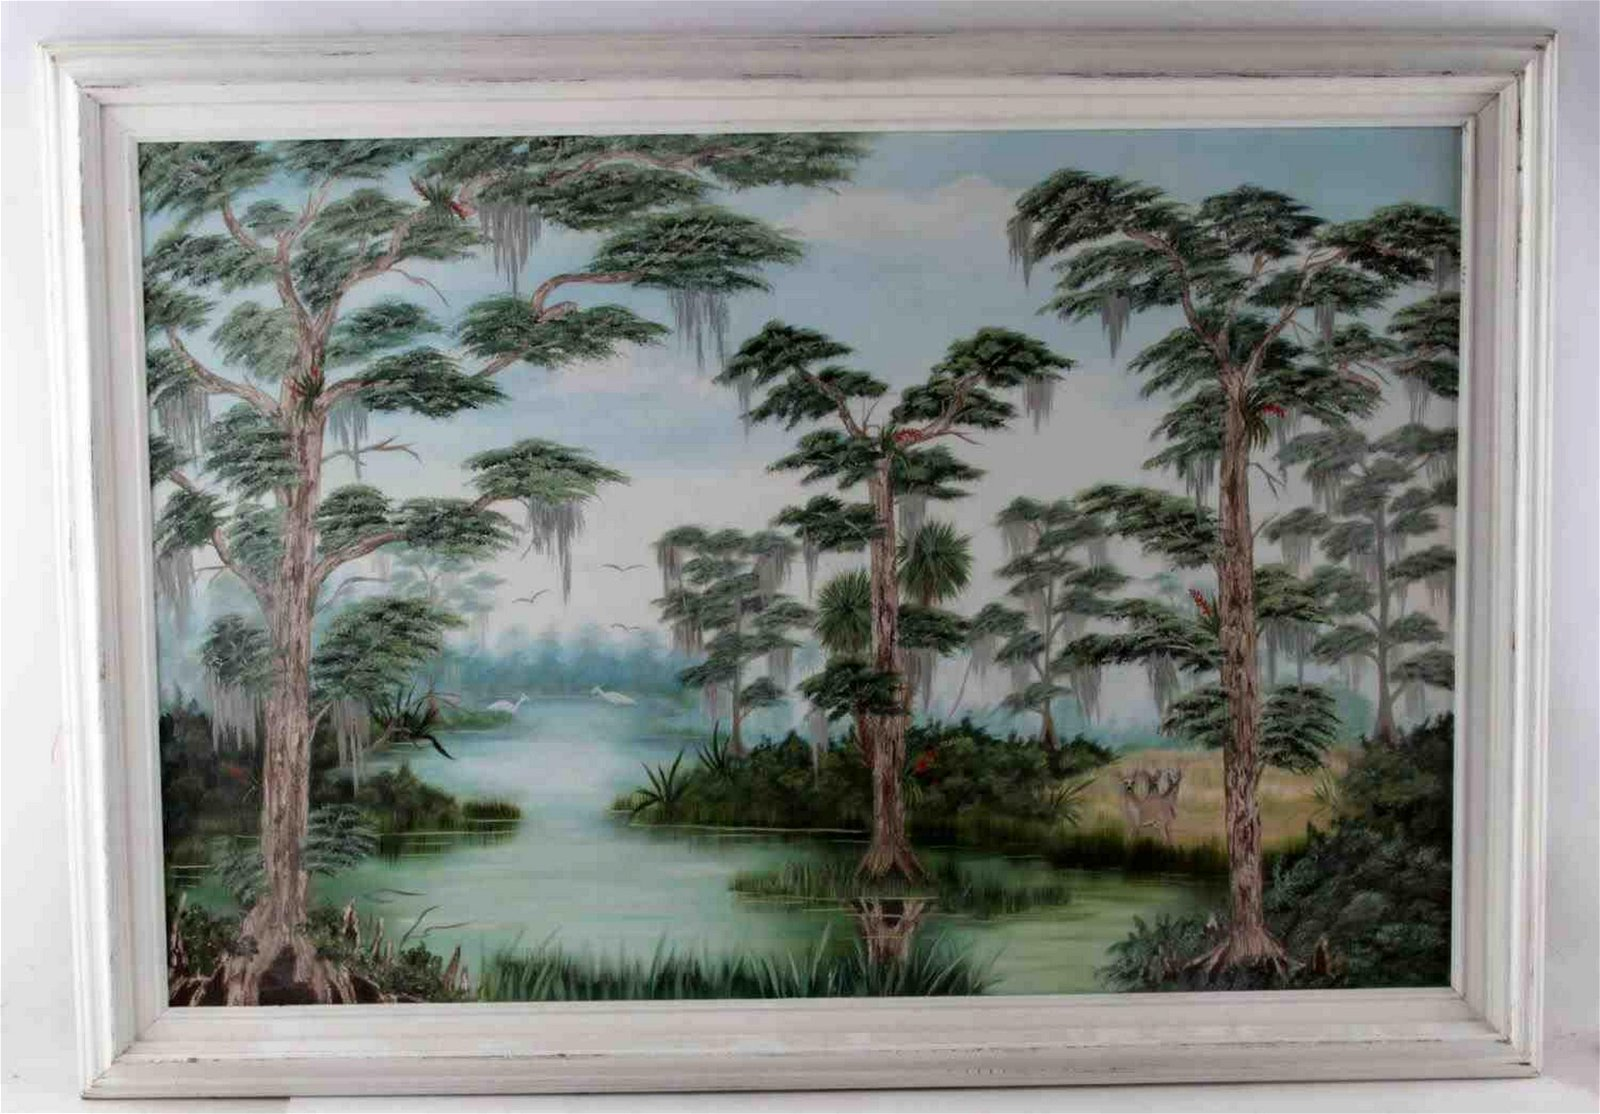 OIL ON CANVAS PAINTING IN HIGHWAYMEN STYLE SIGNED